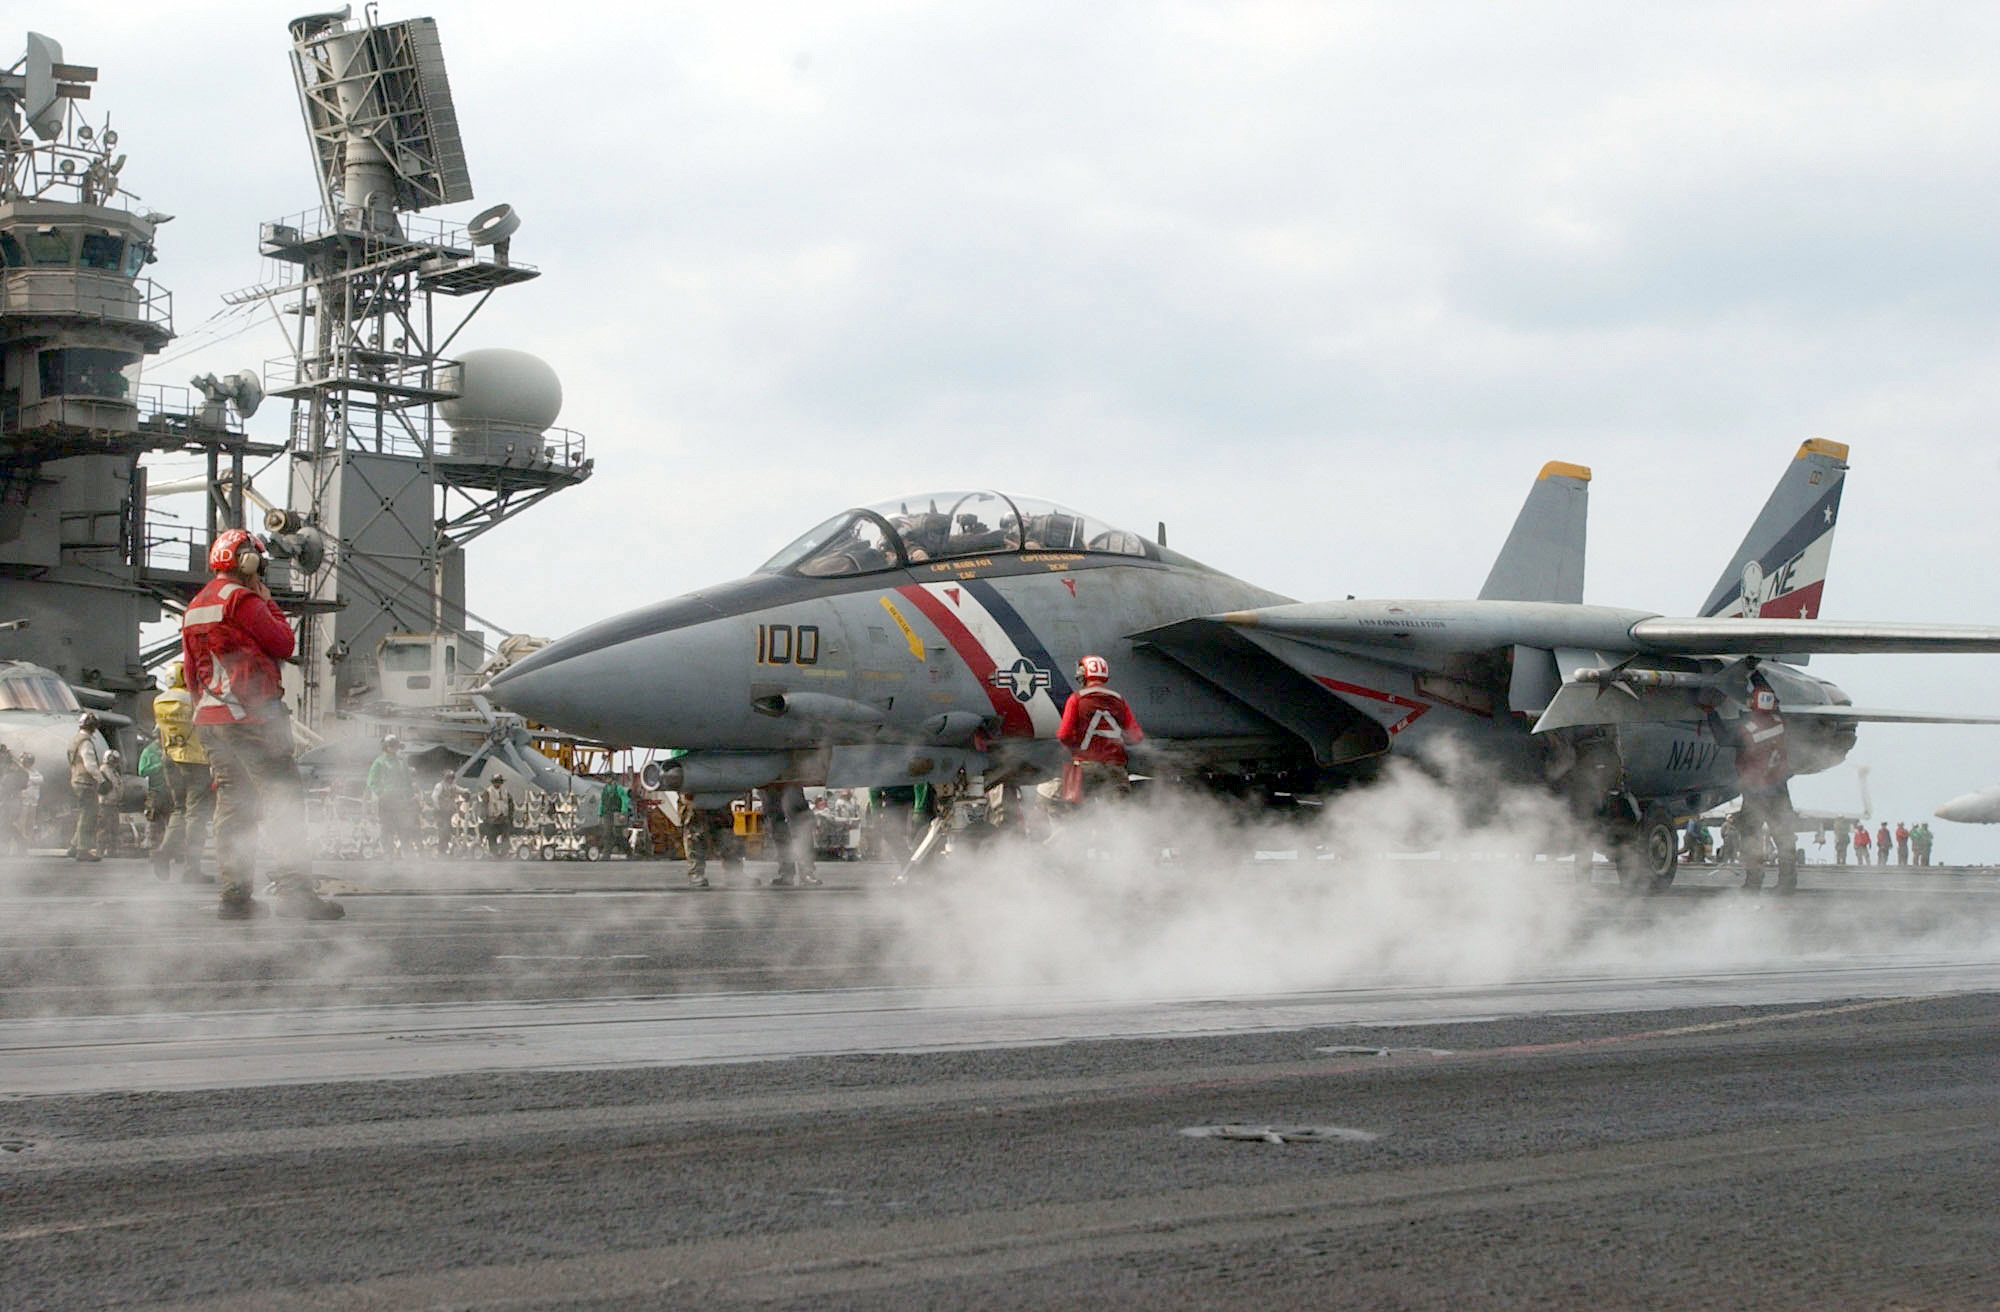 Res: 2000x1312, Ten years ago today: the U.S. Navy F-14 Tomcat's attack on Saddam's yacht